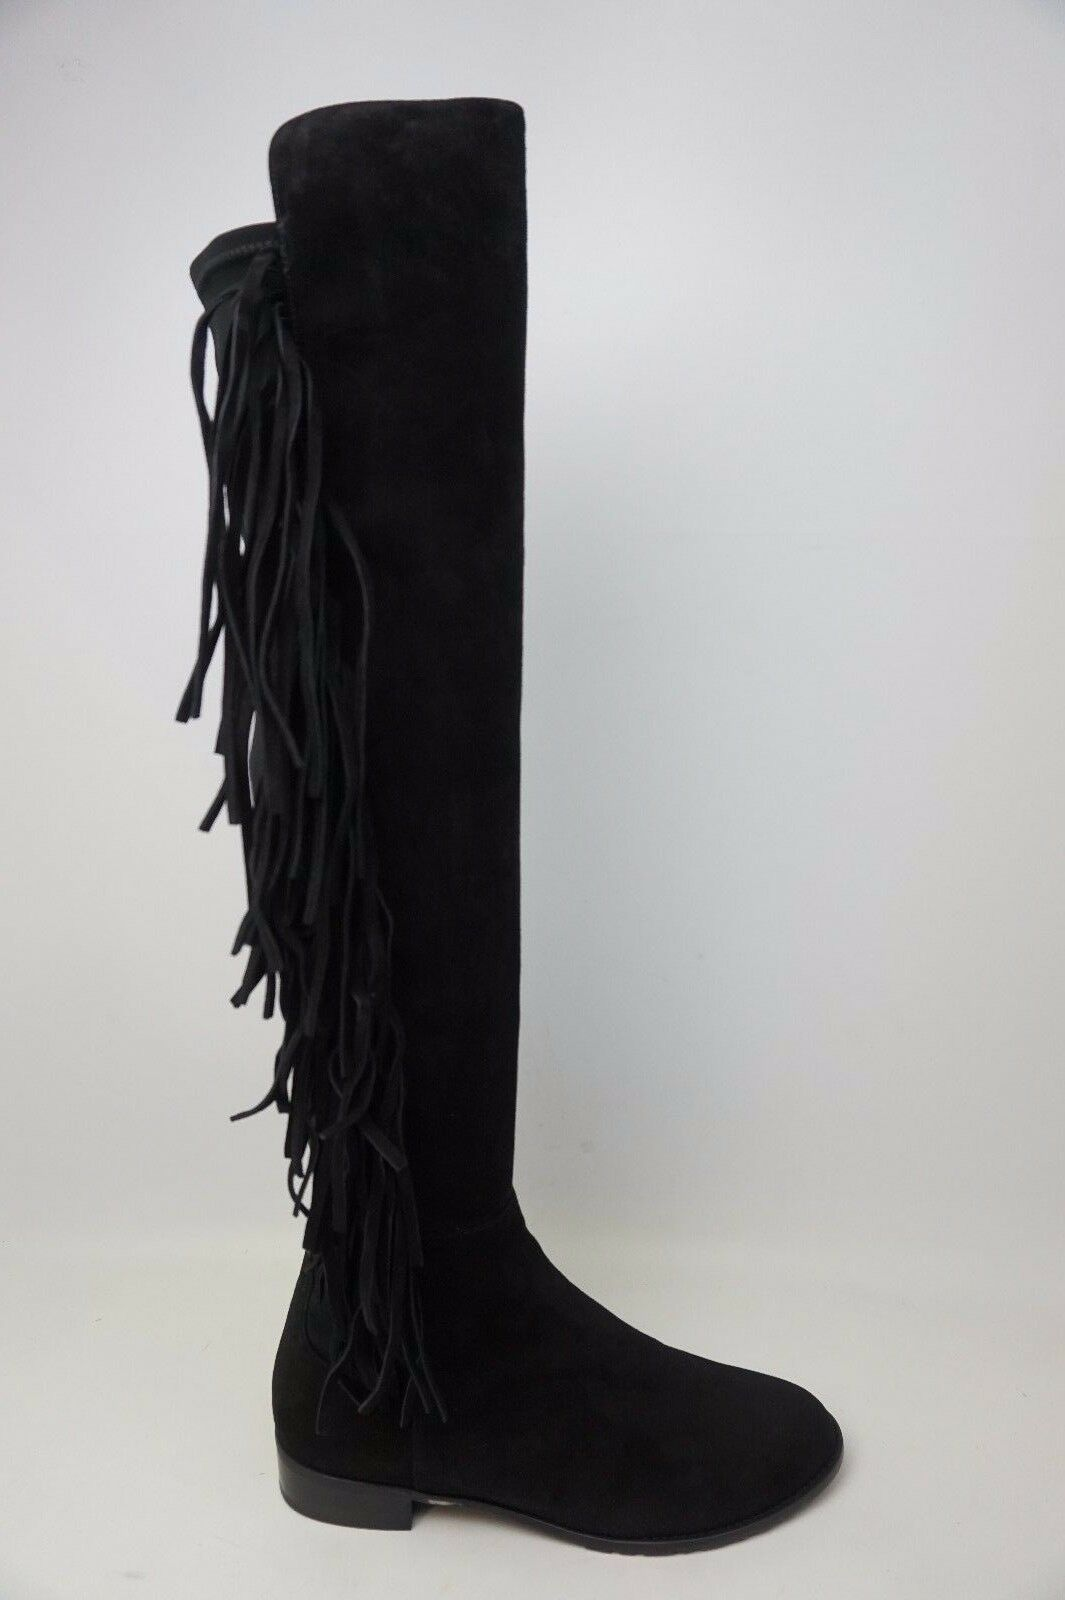 Stuart Weitzman Mane Over the Knee Stretch Black Suede Fringe Women's Boots NEW